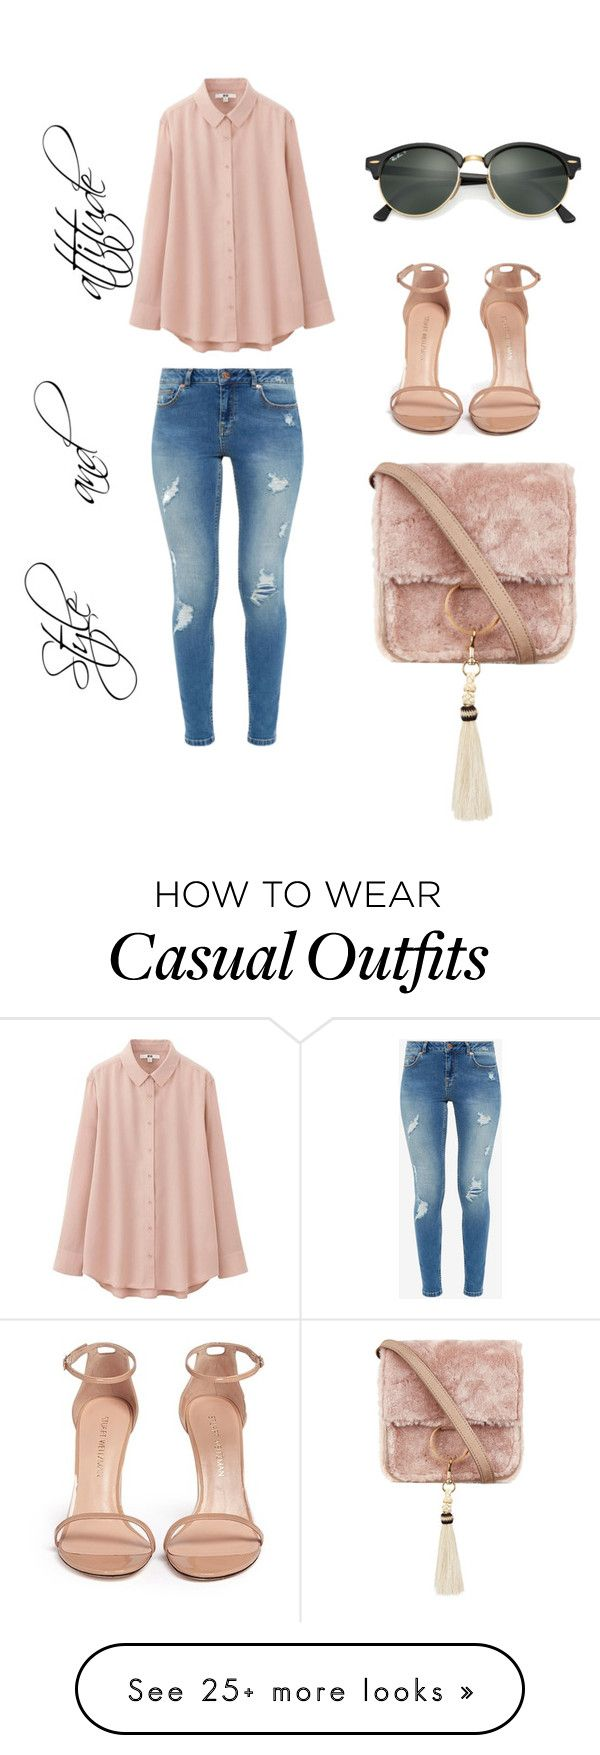 """Casual elegant"" by parampara on Polyvore featuring Ted Baker, Uniqlo, Brother Vellies, Stuart Weitzman and Ray-Ban"